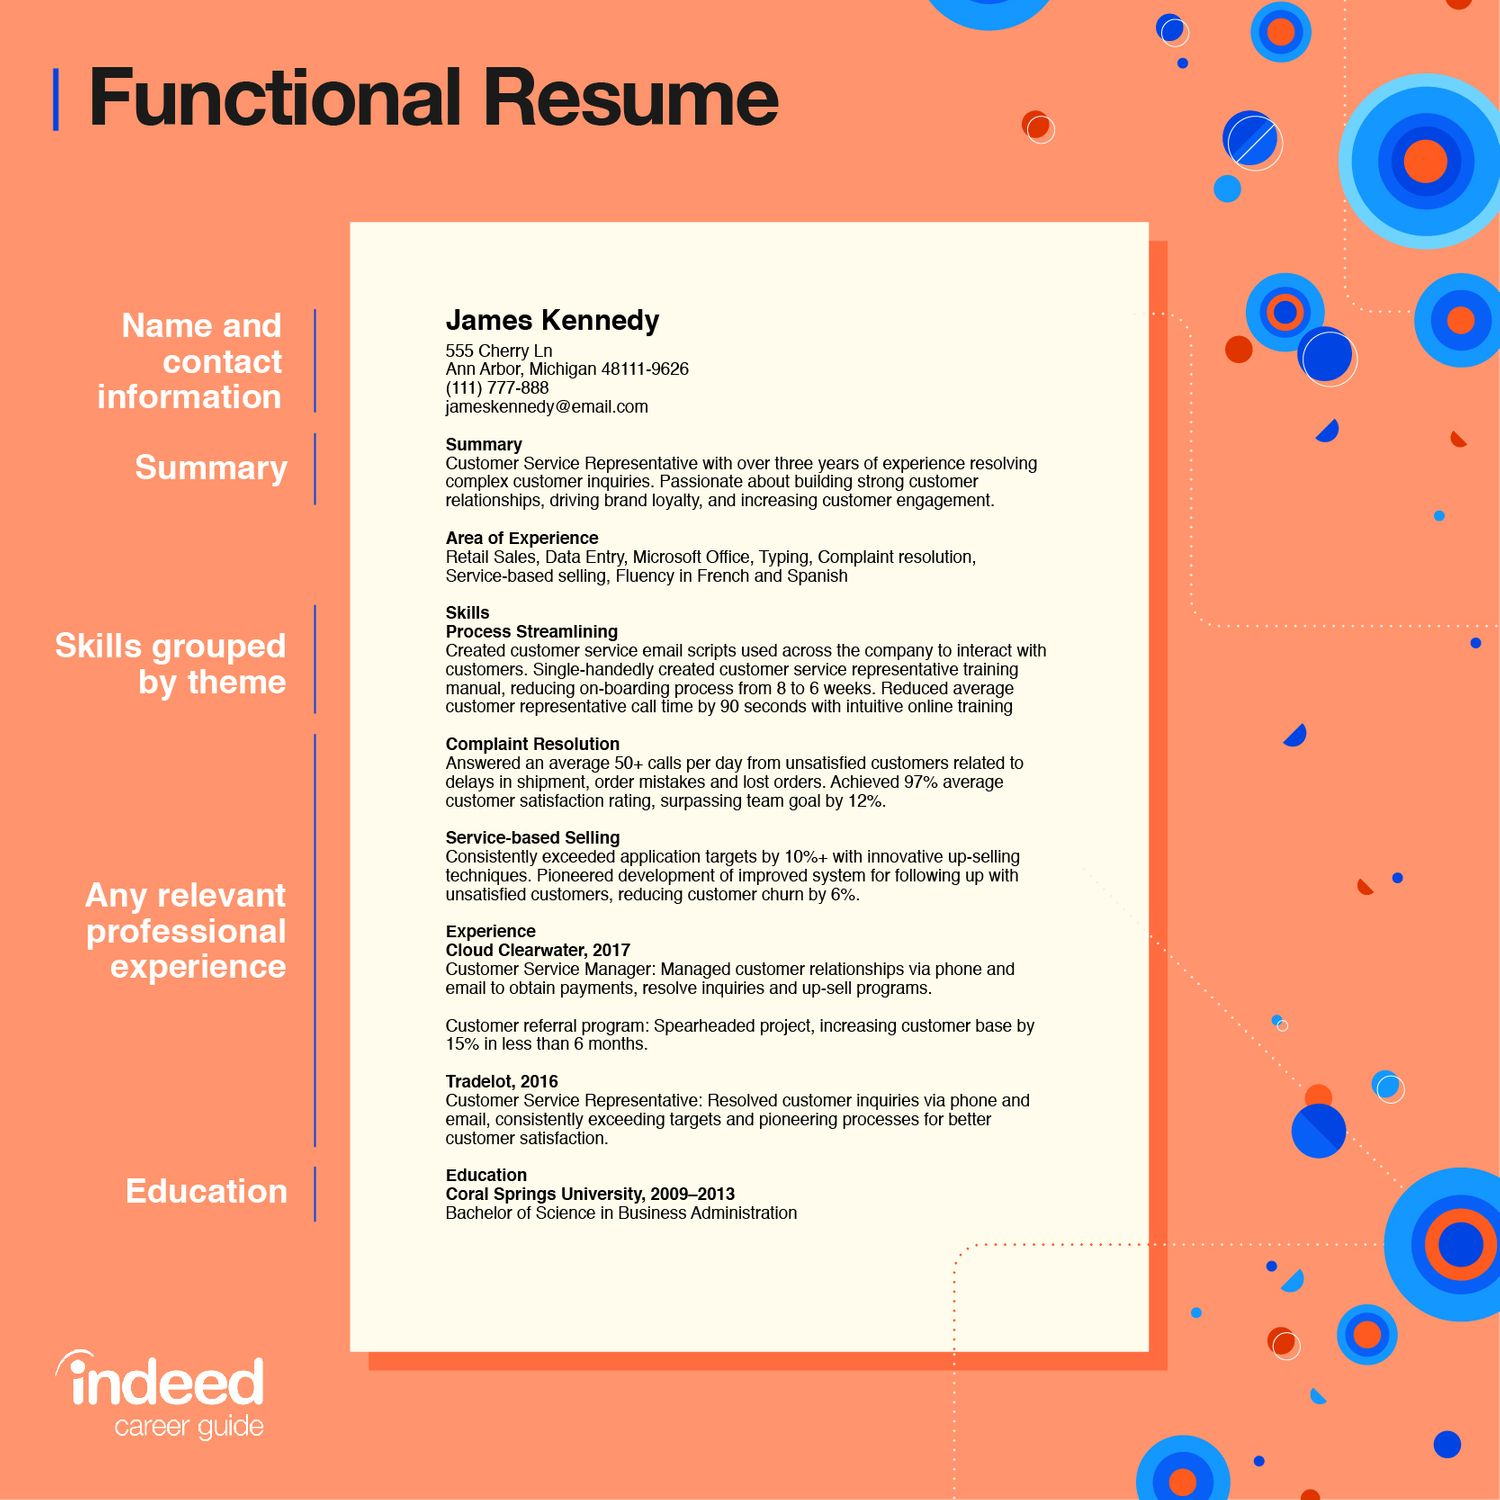 best skills to include on resume with examples indeed portion of resized title for Resume Skills Portion Of Resume